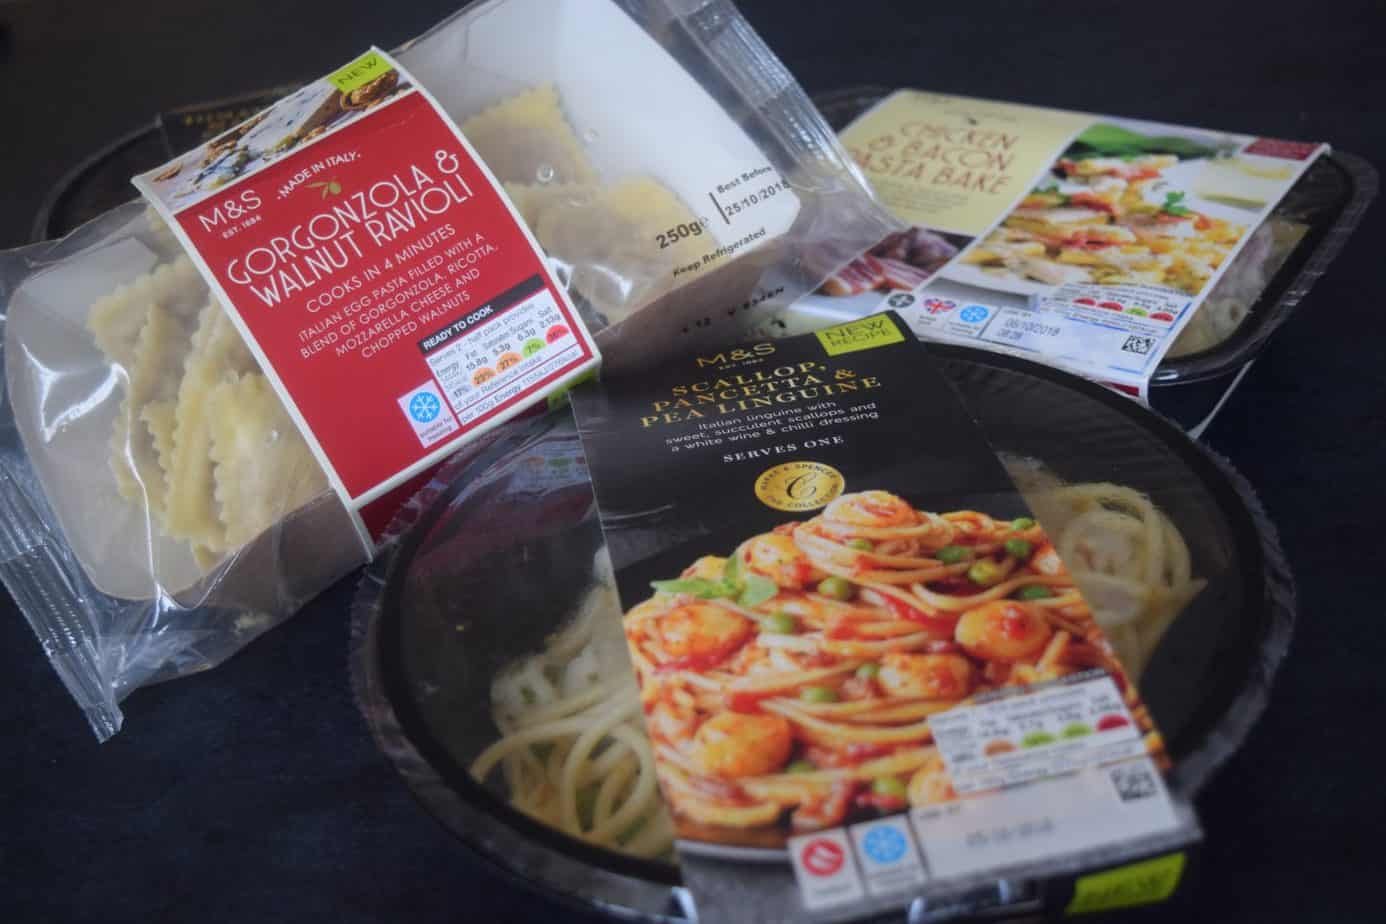 A close up of the dishes we had from Marks and Spencer's Italian Range